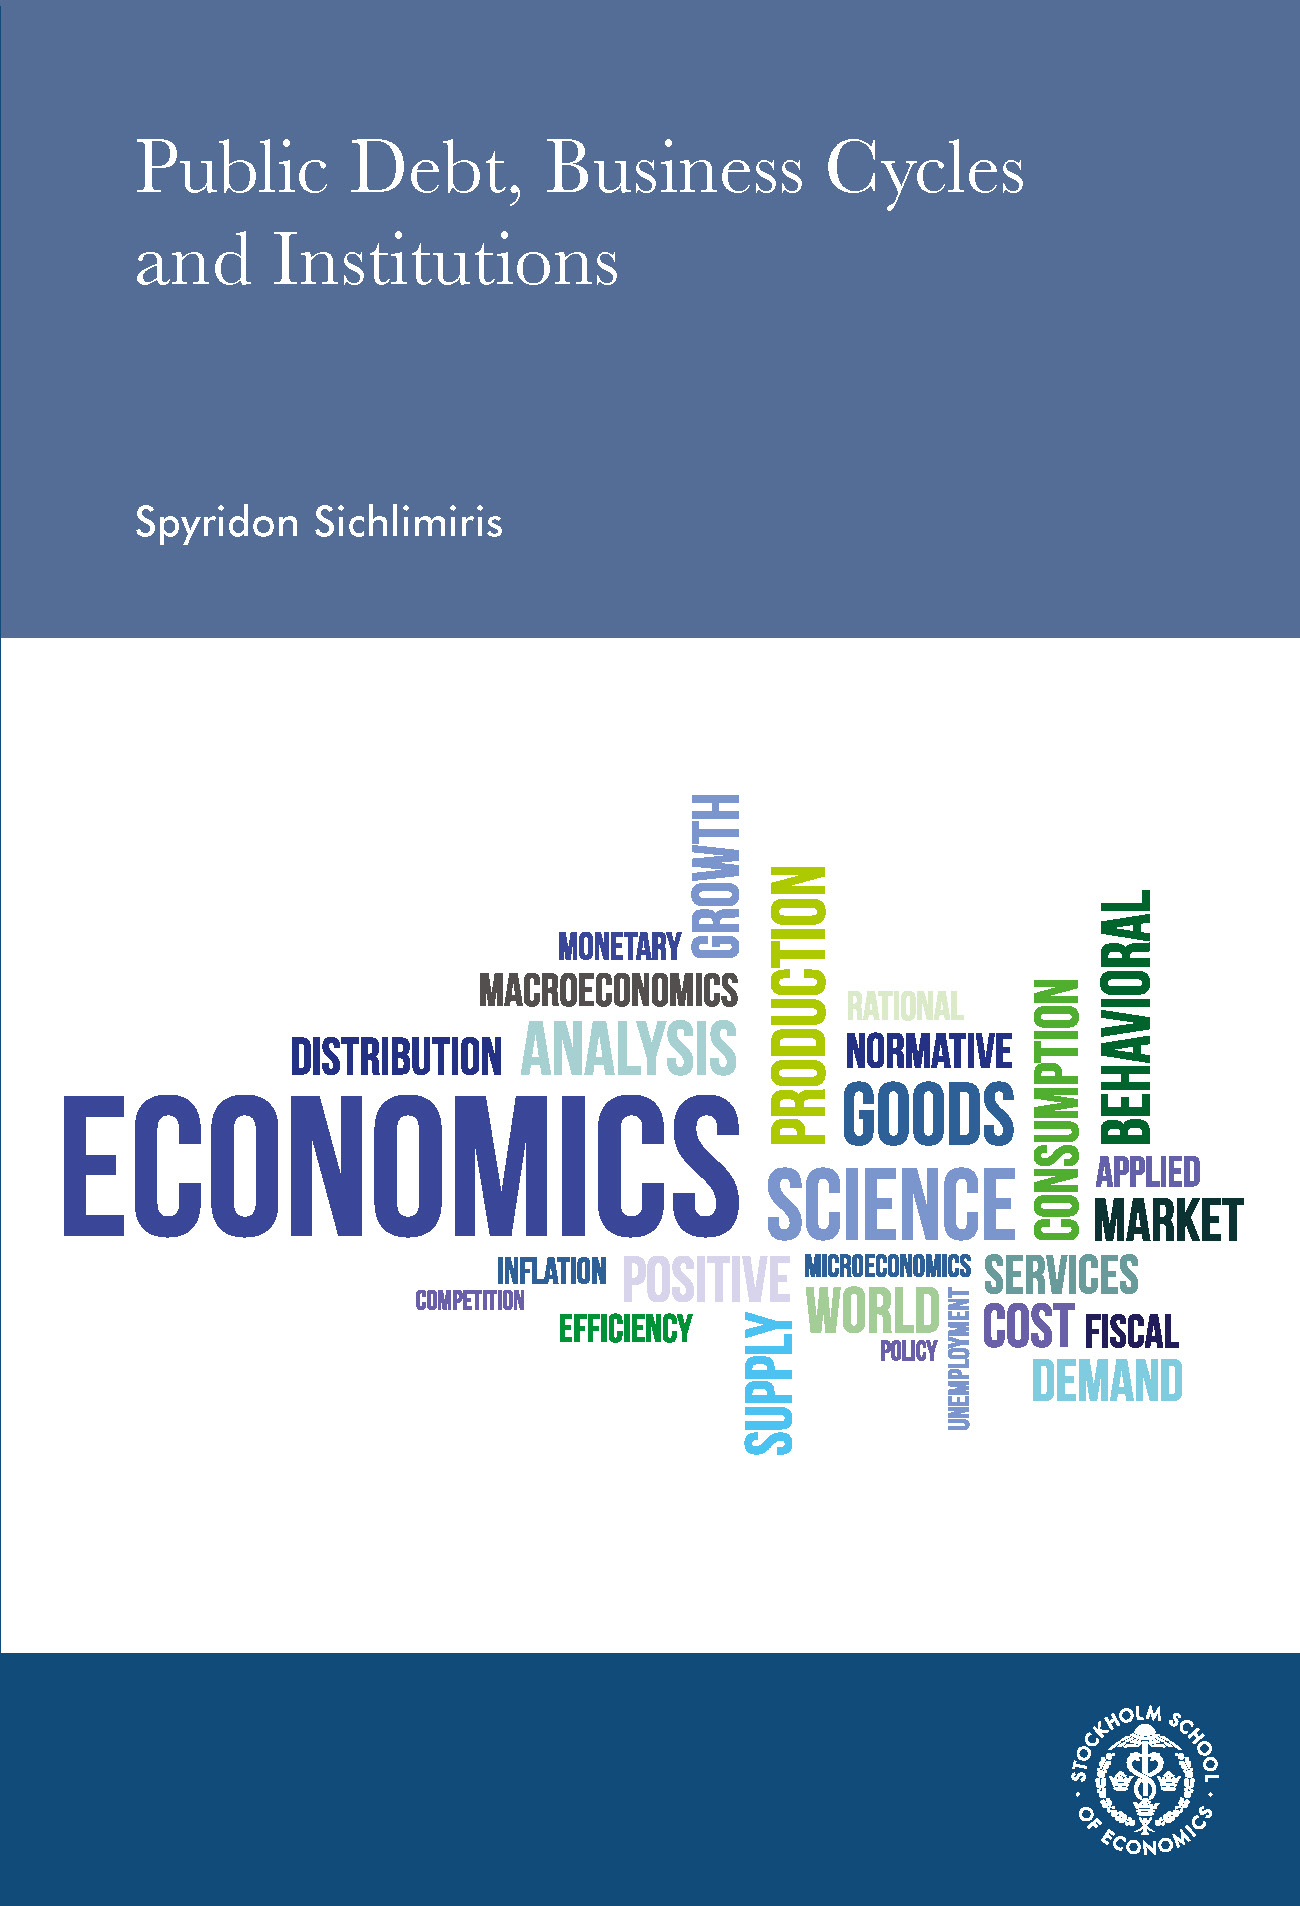 macroeconomy essay Why are expectations so important in macroeconomic theory explain the different approaches to expectation adopted by economists from keynes onward.